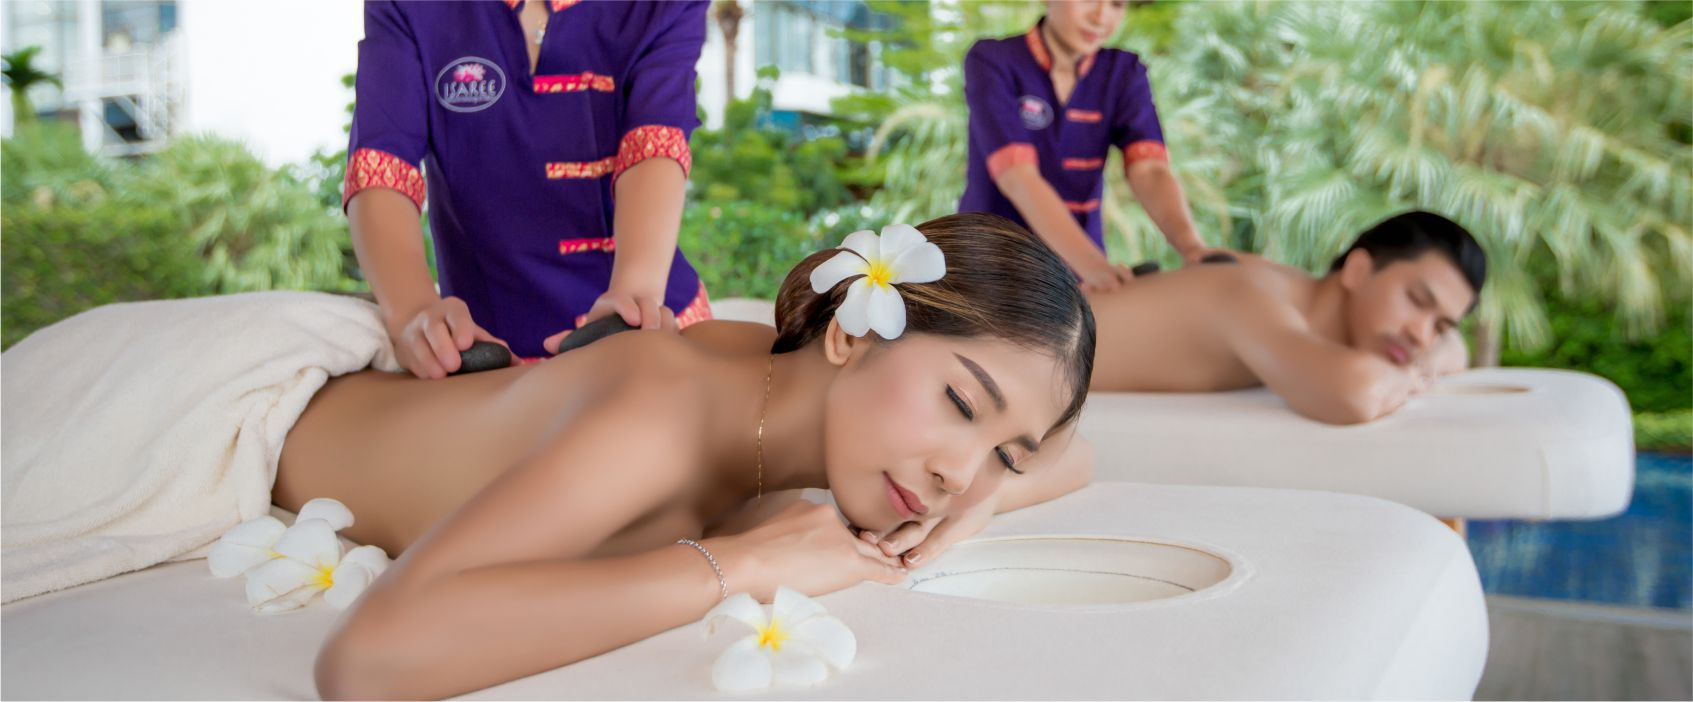 Isaree_Thaimassage_Slider2